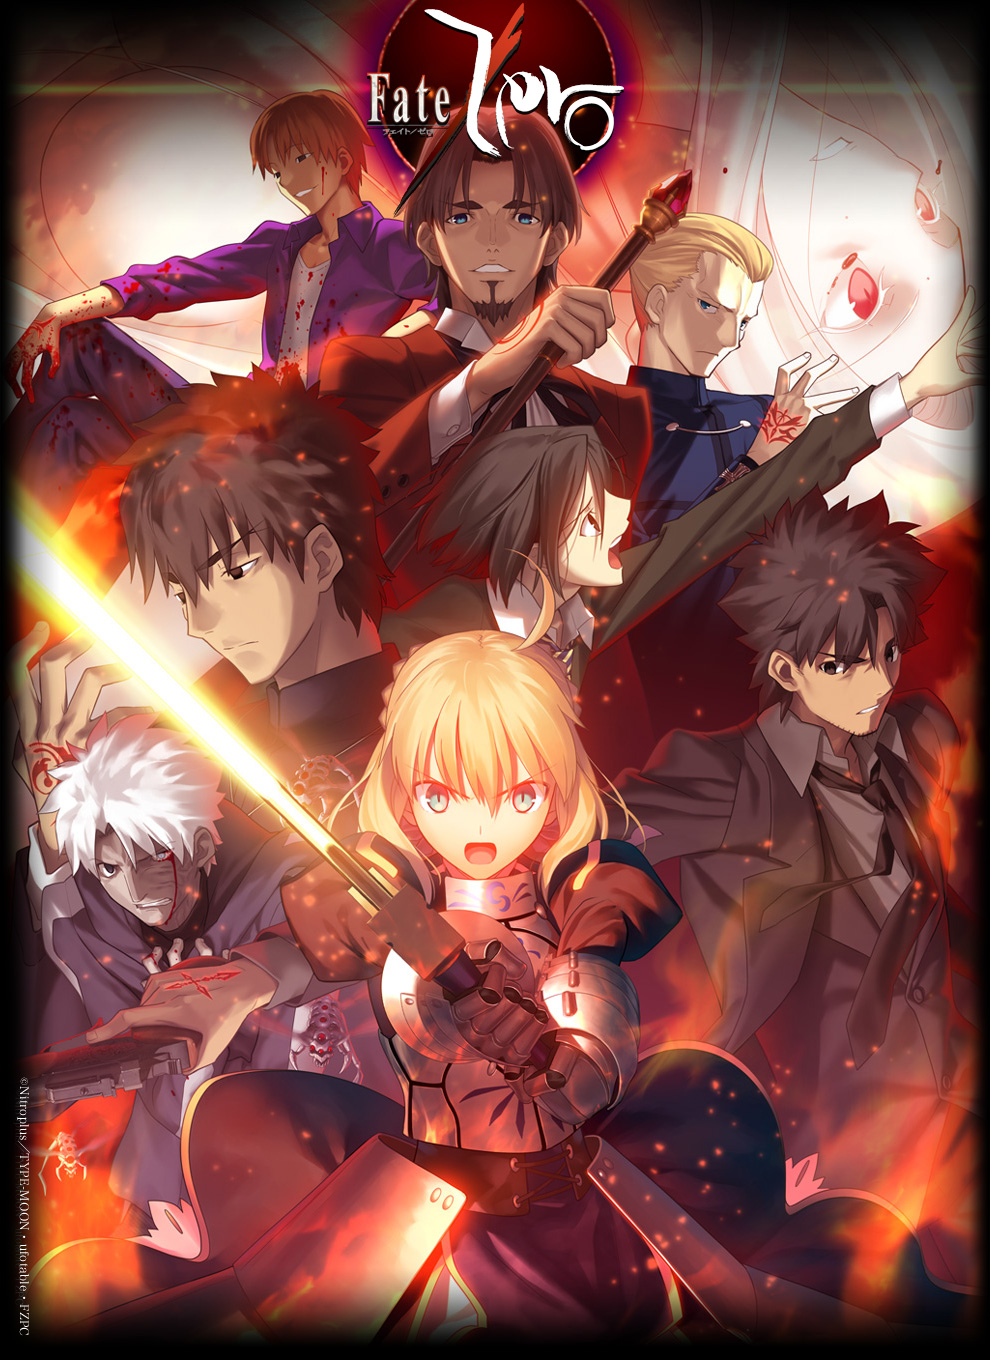 Fate Zero Flawed Characters Urobuchis Style And Series